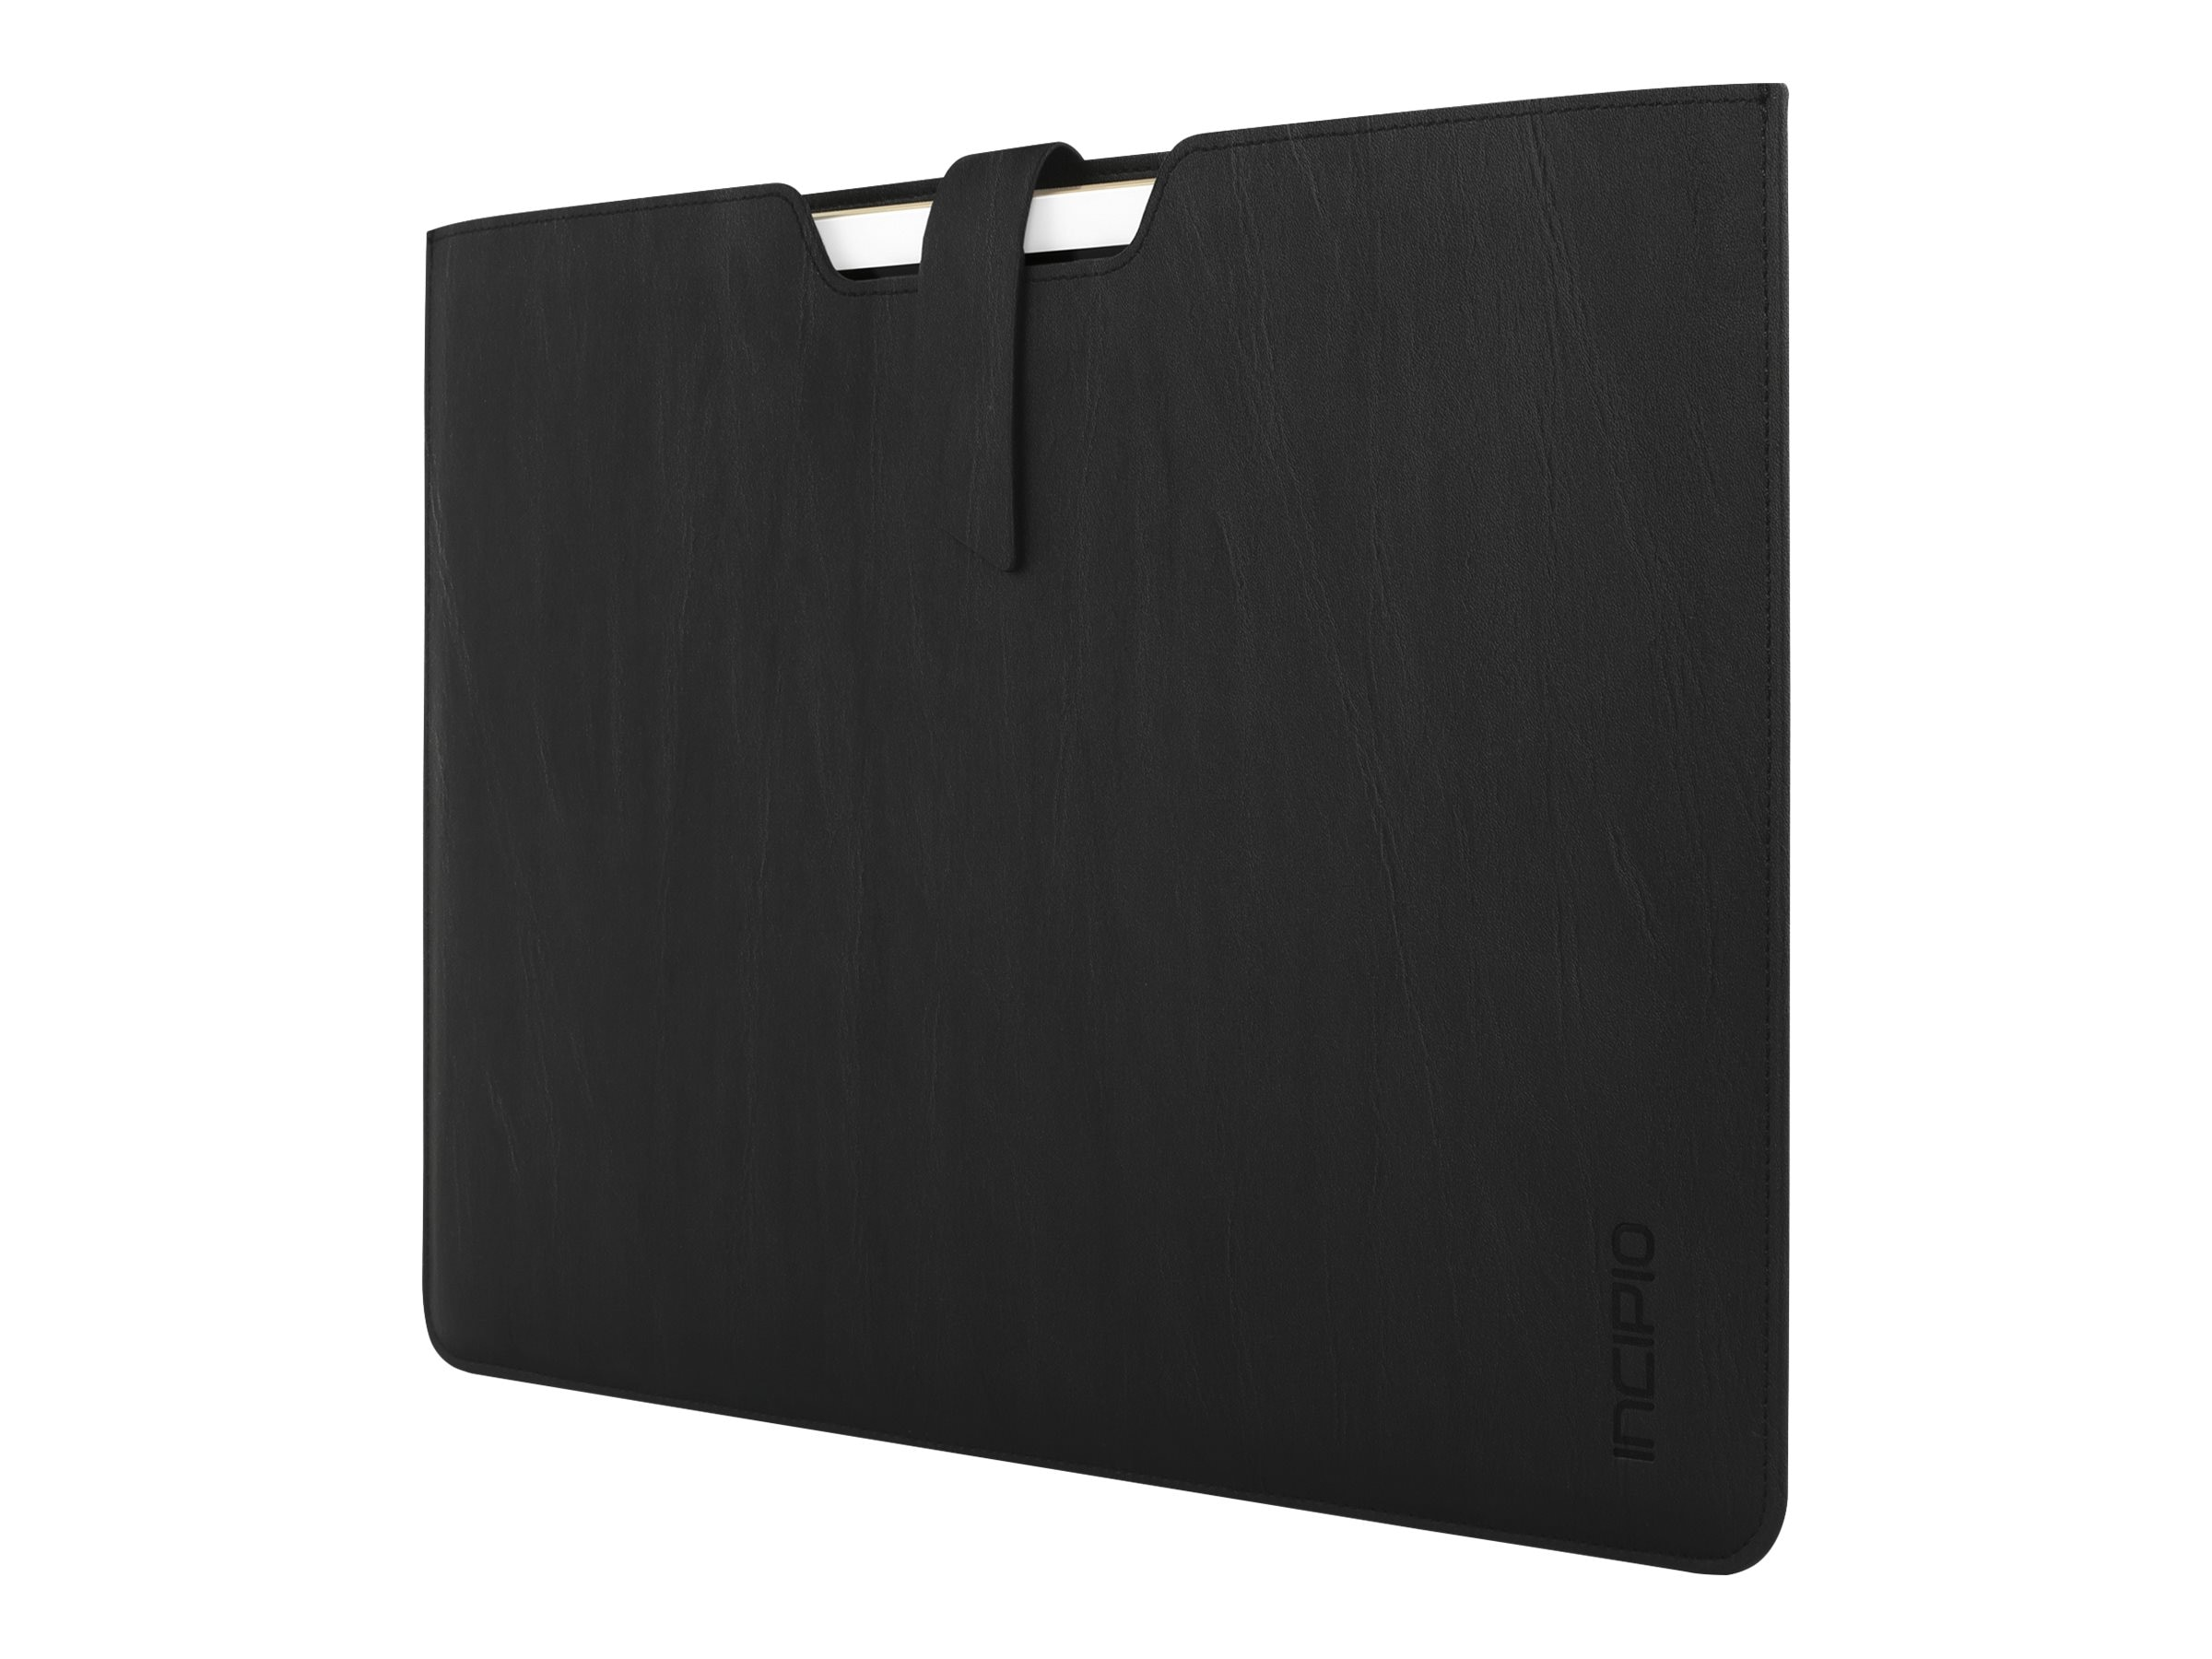 Incipio Lunde Slim Vegan Leather Sleeve for iPad Pro 12.9, Black